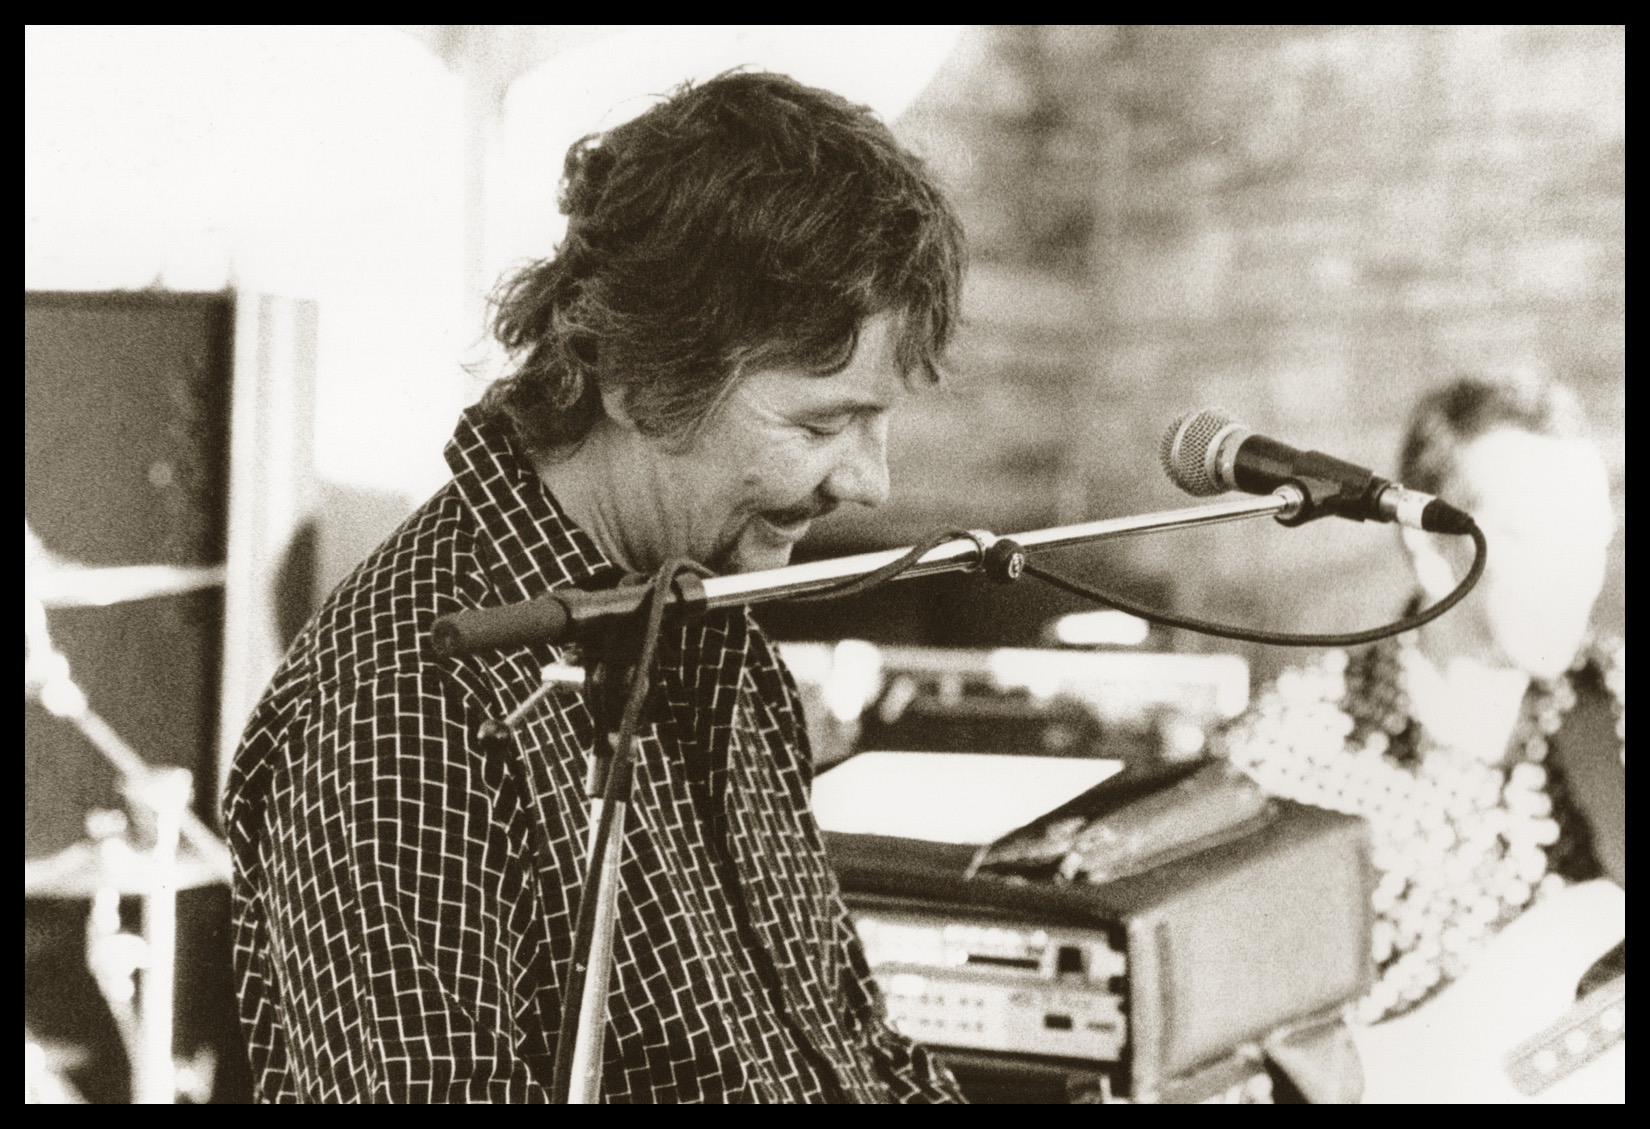 Don Airey (photo courtesy of Graeme Stark)